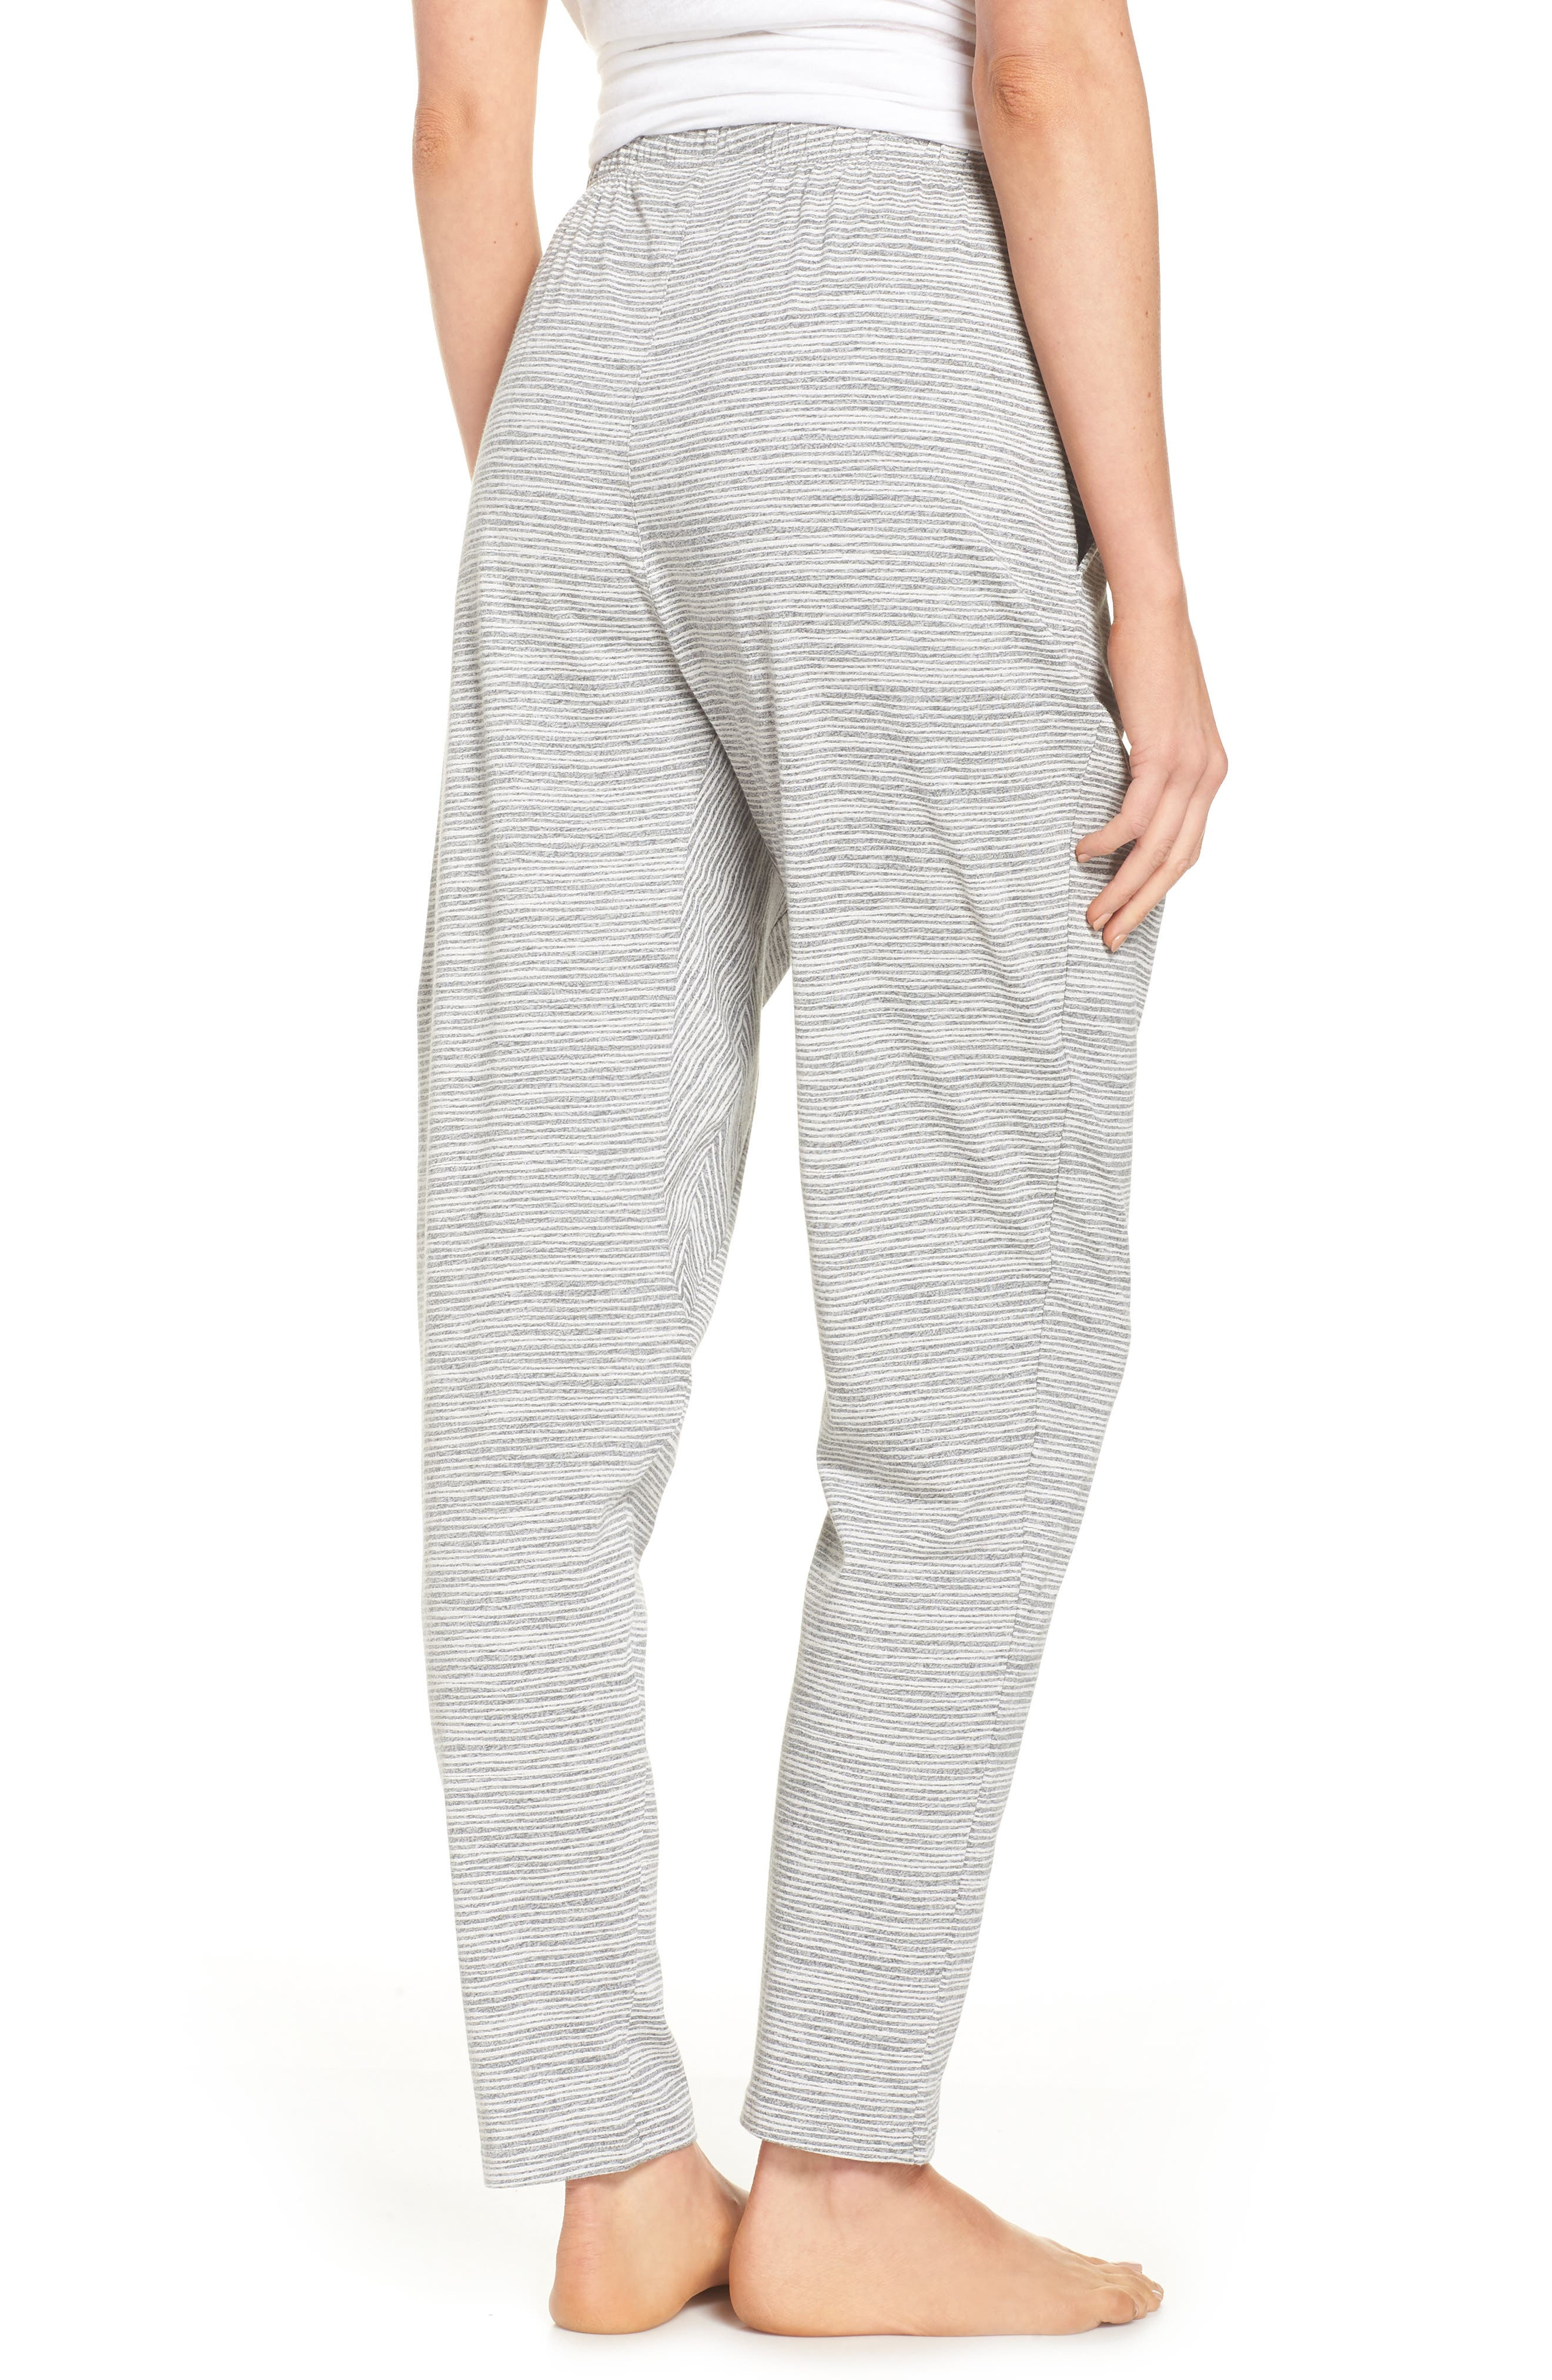 Ash Stripe Lounge Pants,                             Alternate thumbnail 2, color,                             Ash Marle Stripe